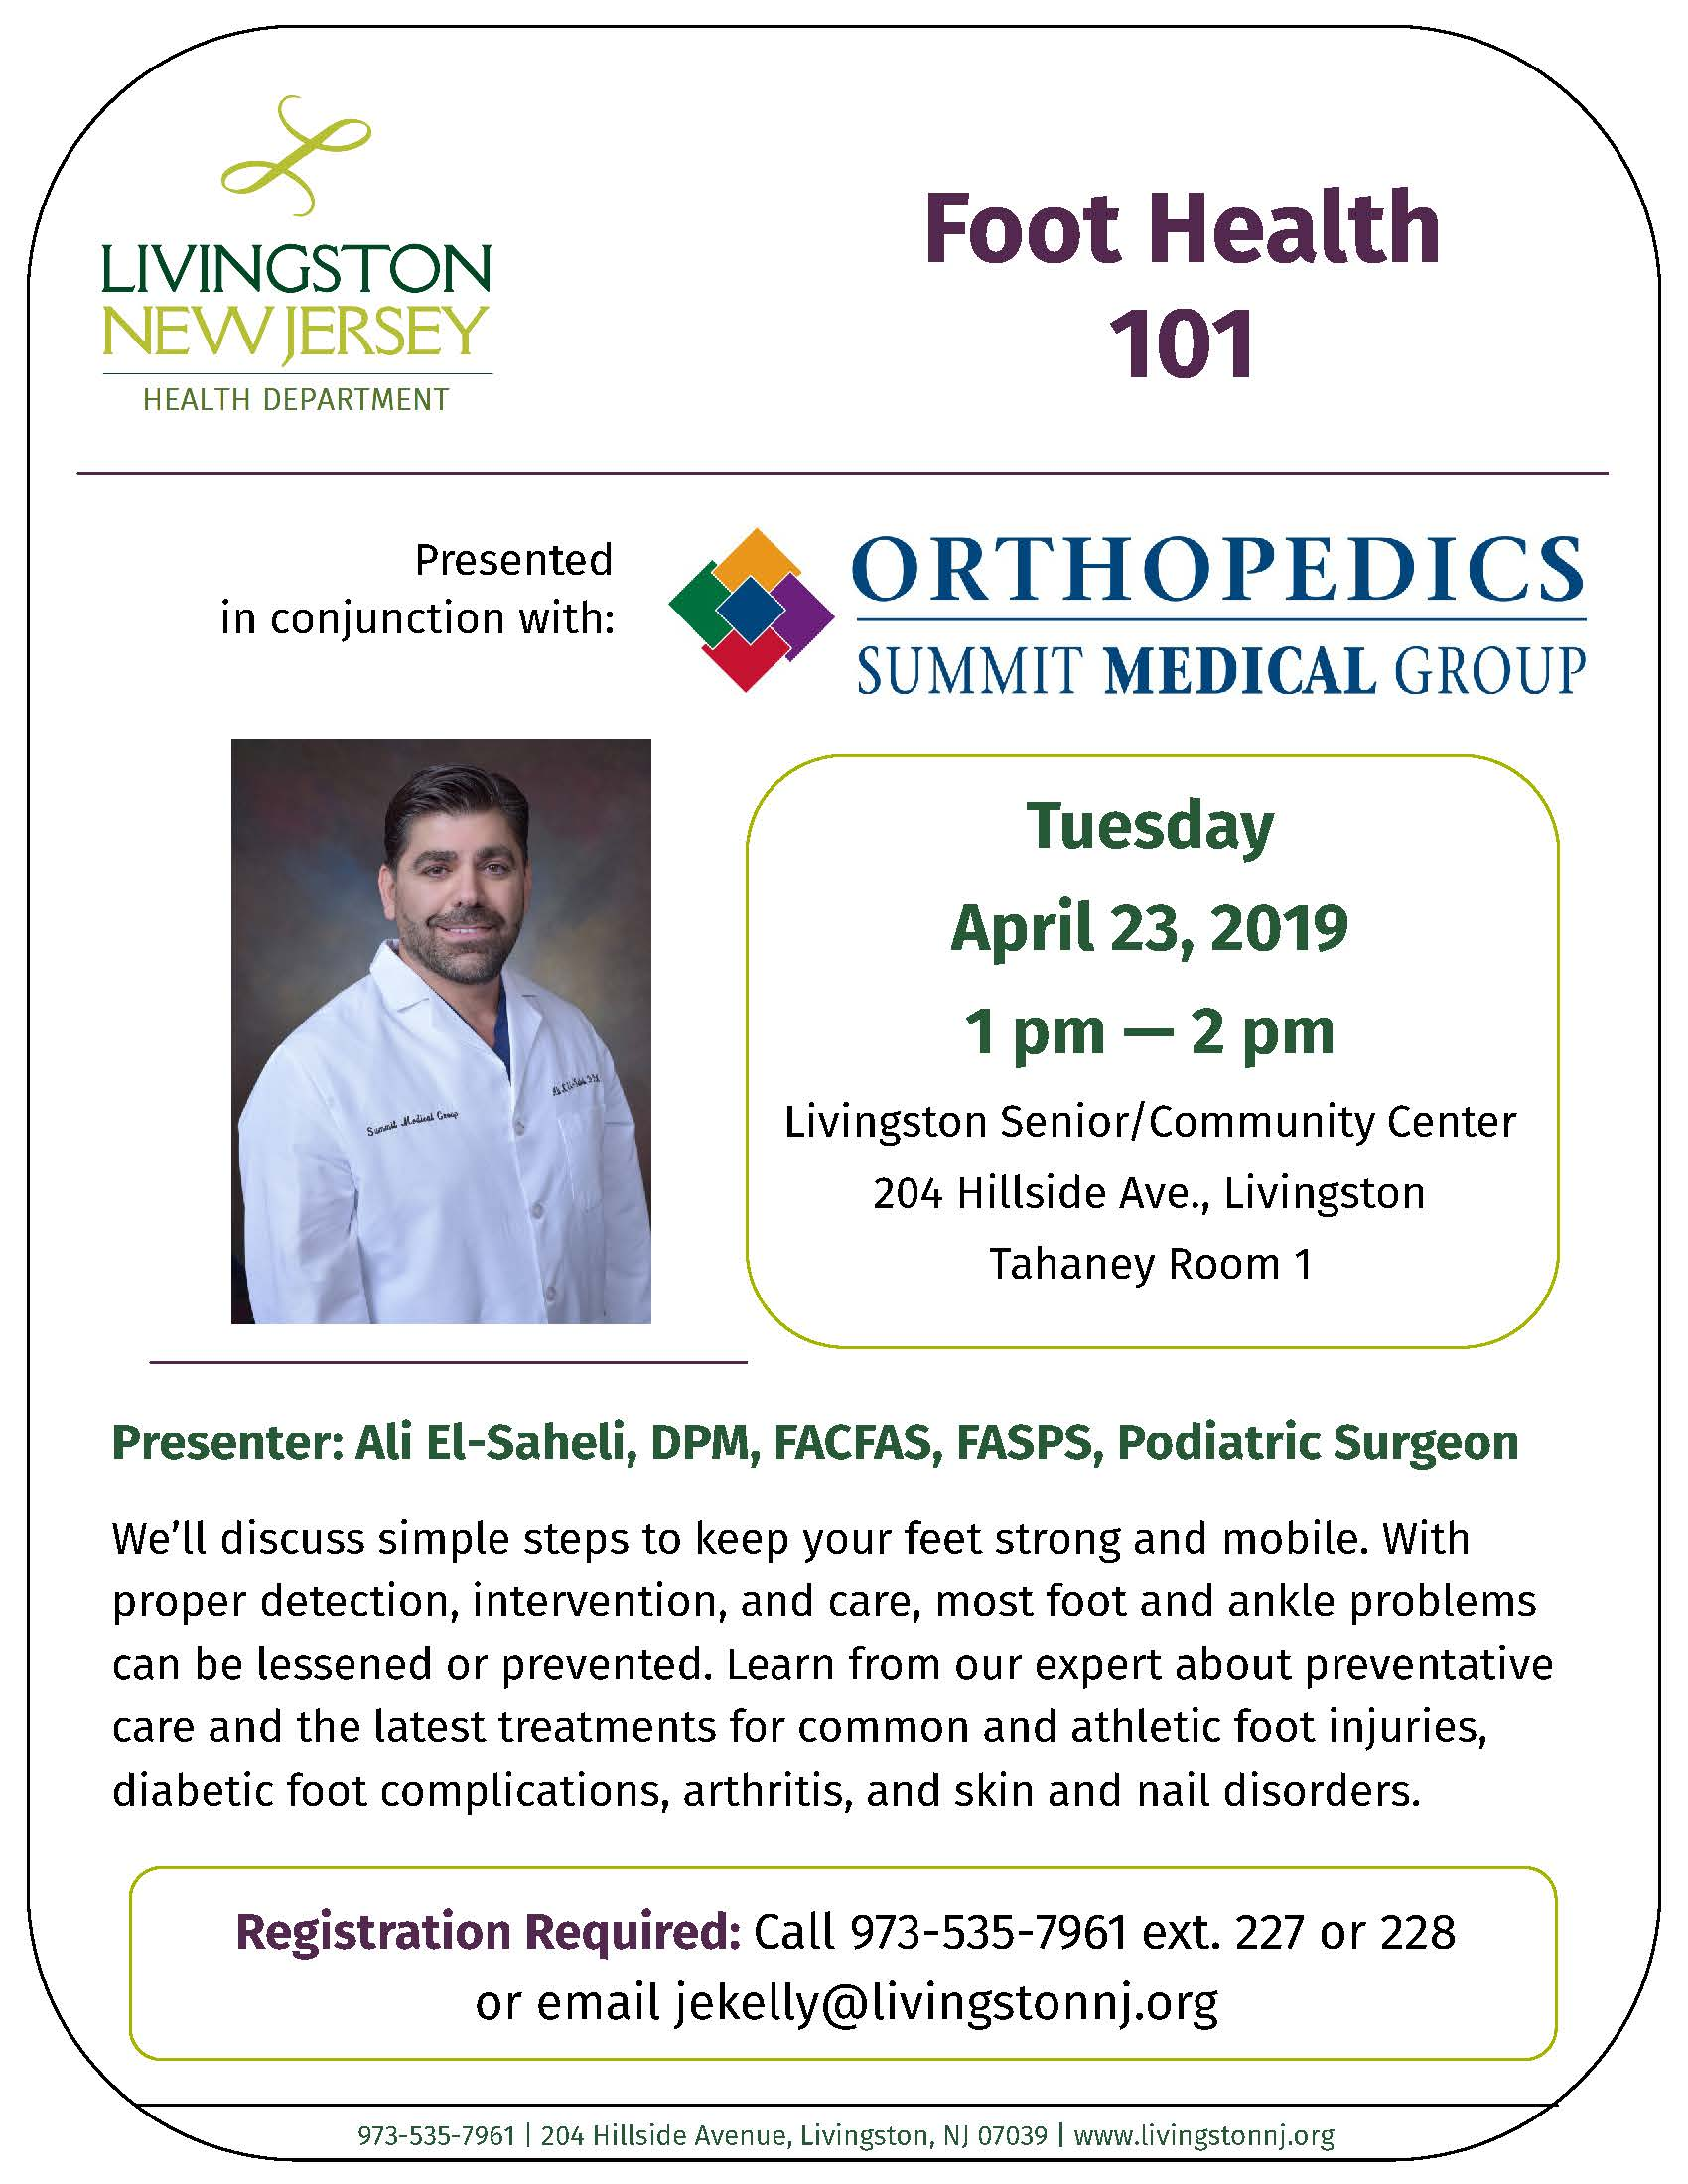 Foot Health 101 Presentation flyer with details and photo of podiatric surgeon who will present. See